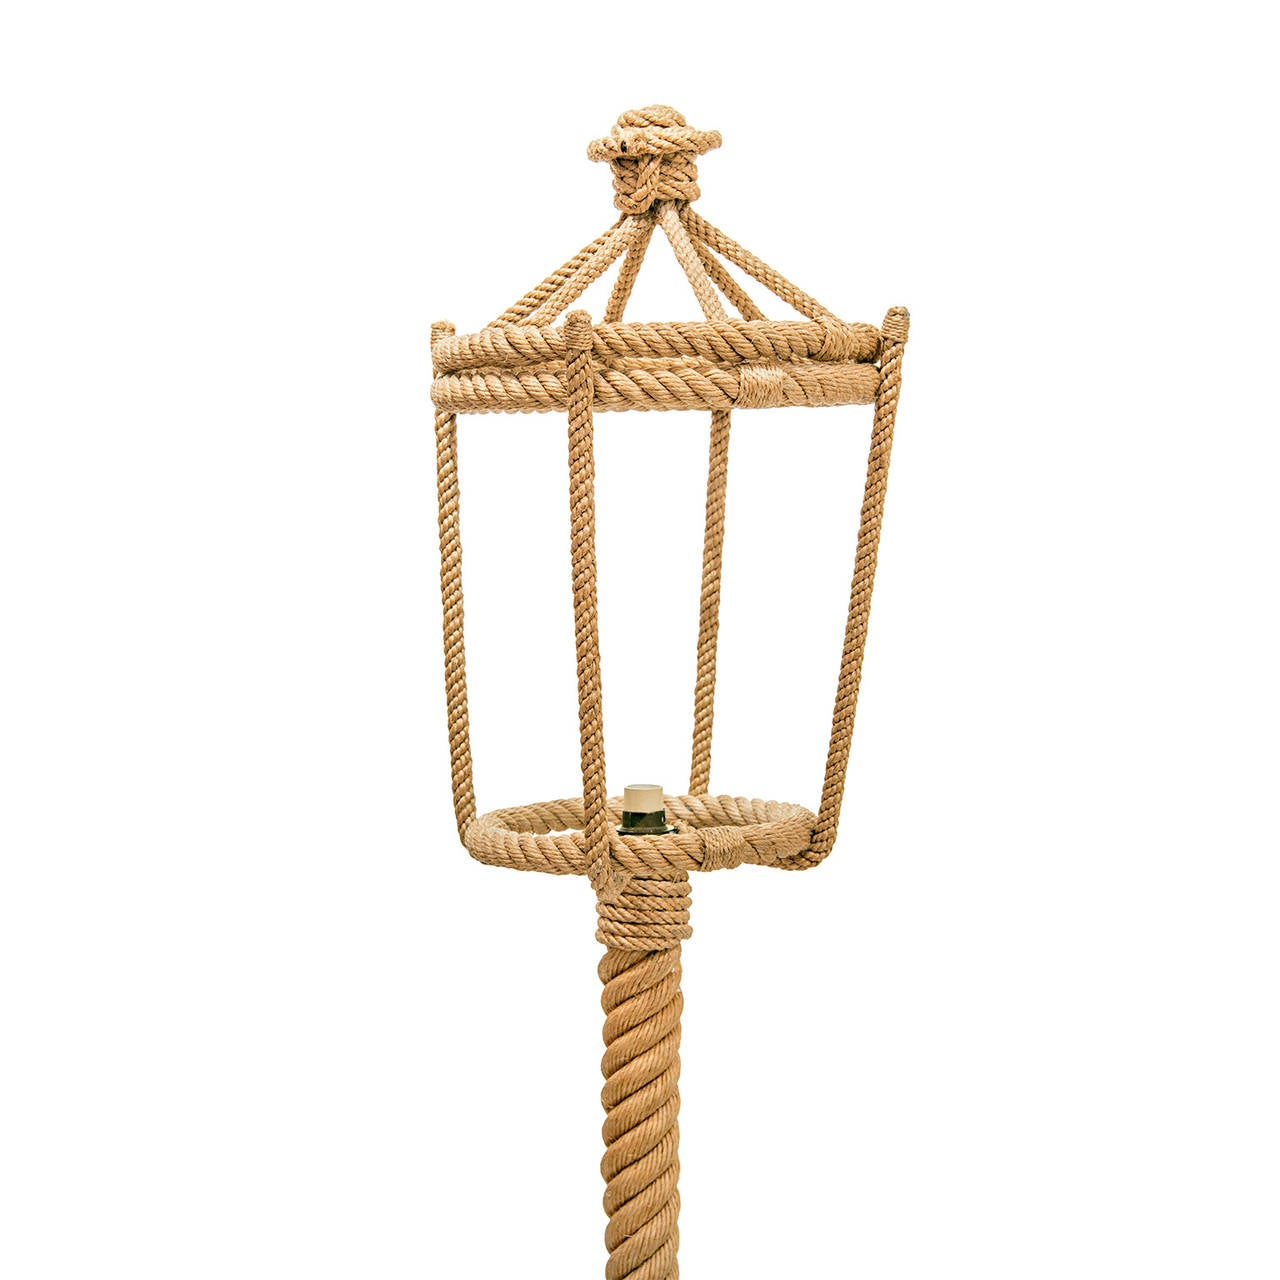 Audoux Minet, four high legs base rope floor lamp. New paper shade. Shade dimensions: 9-3/4